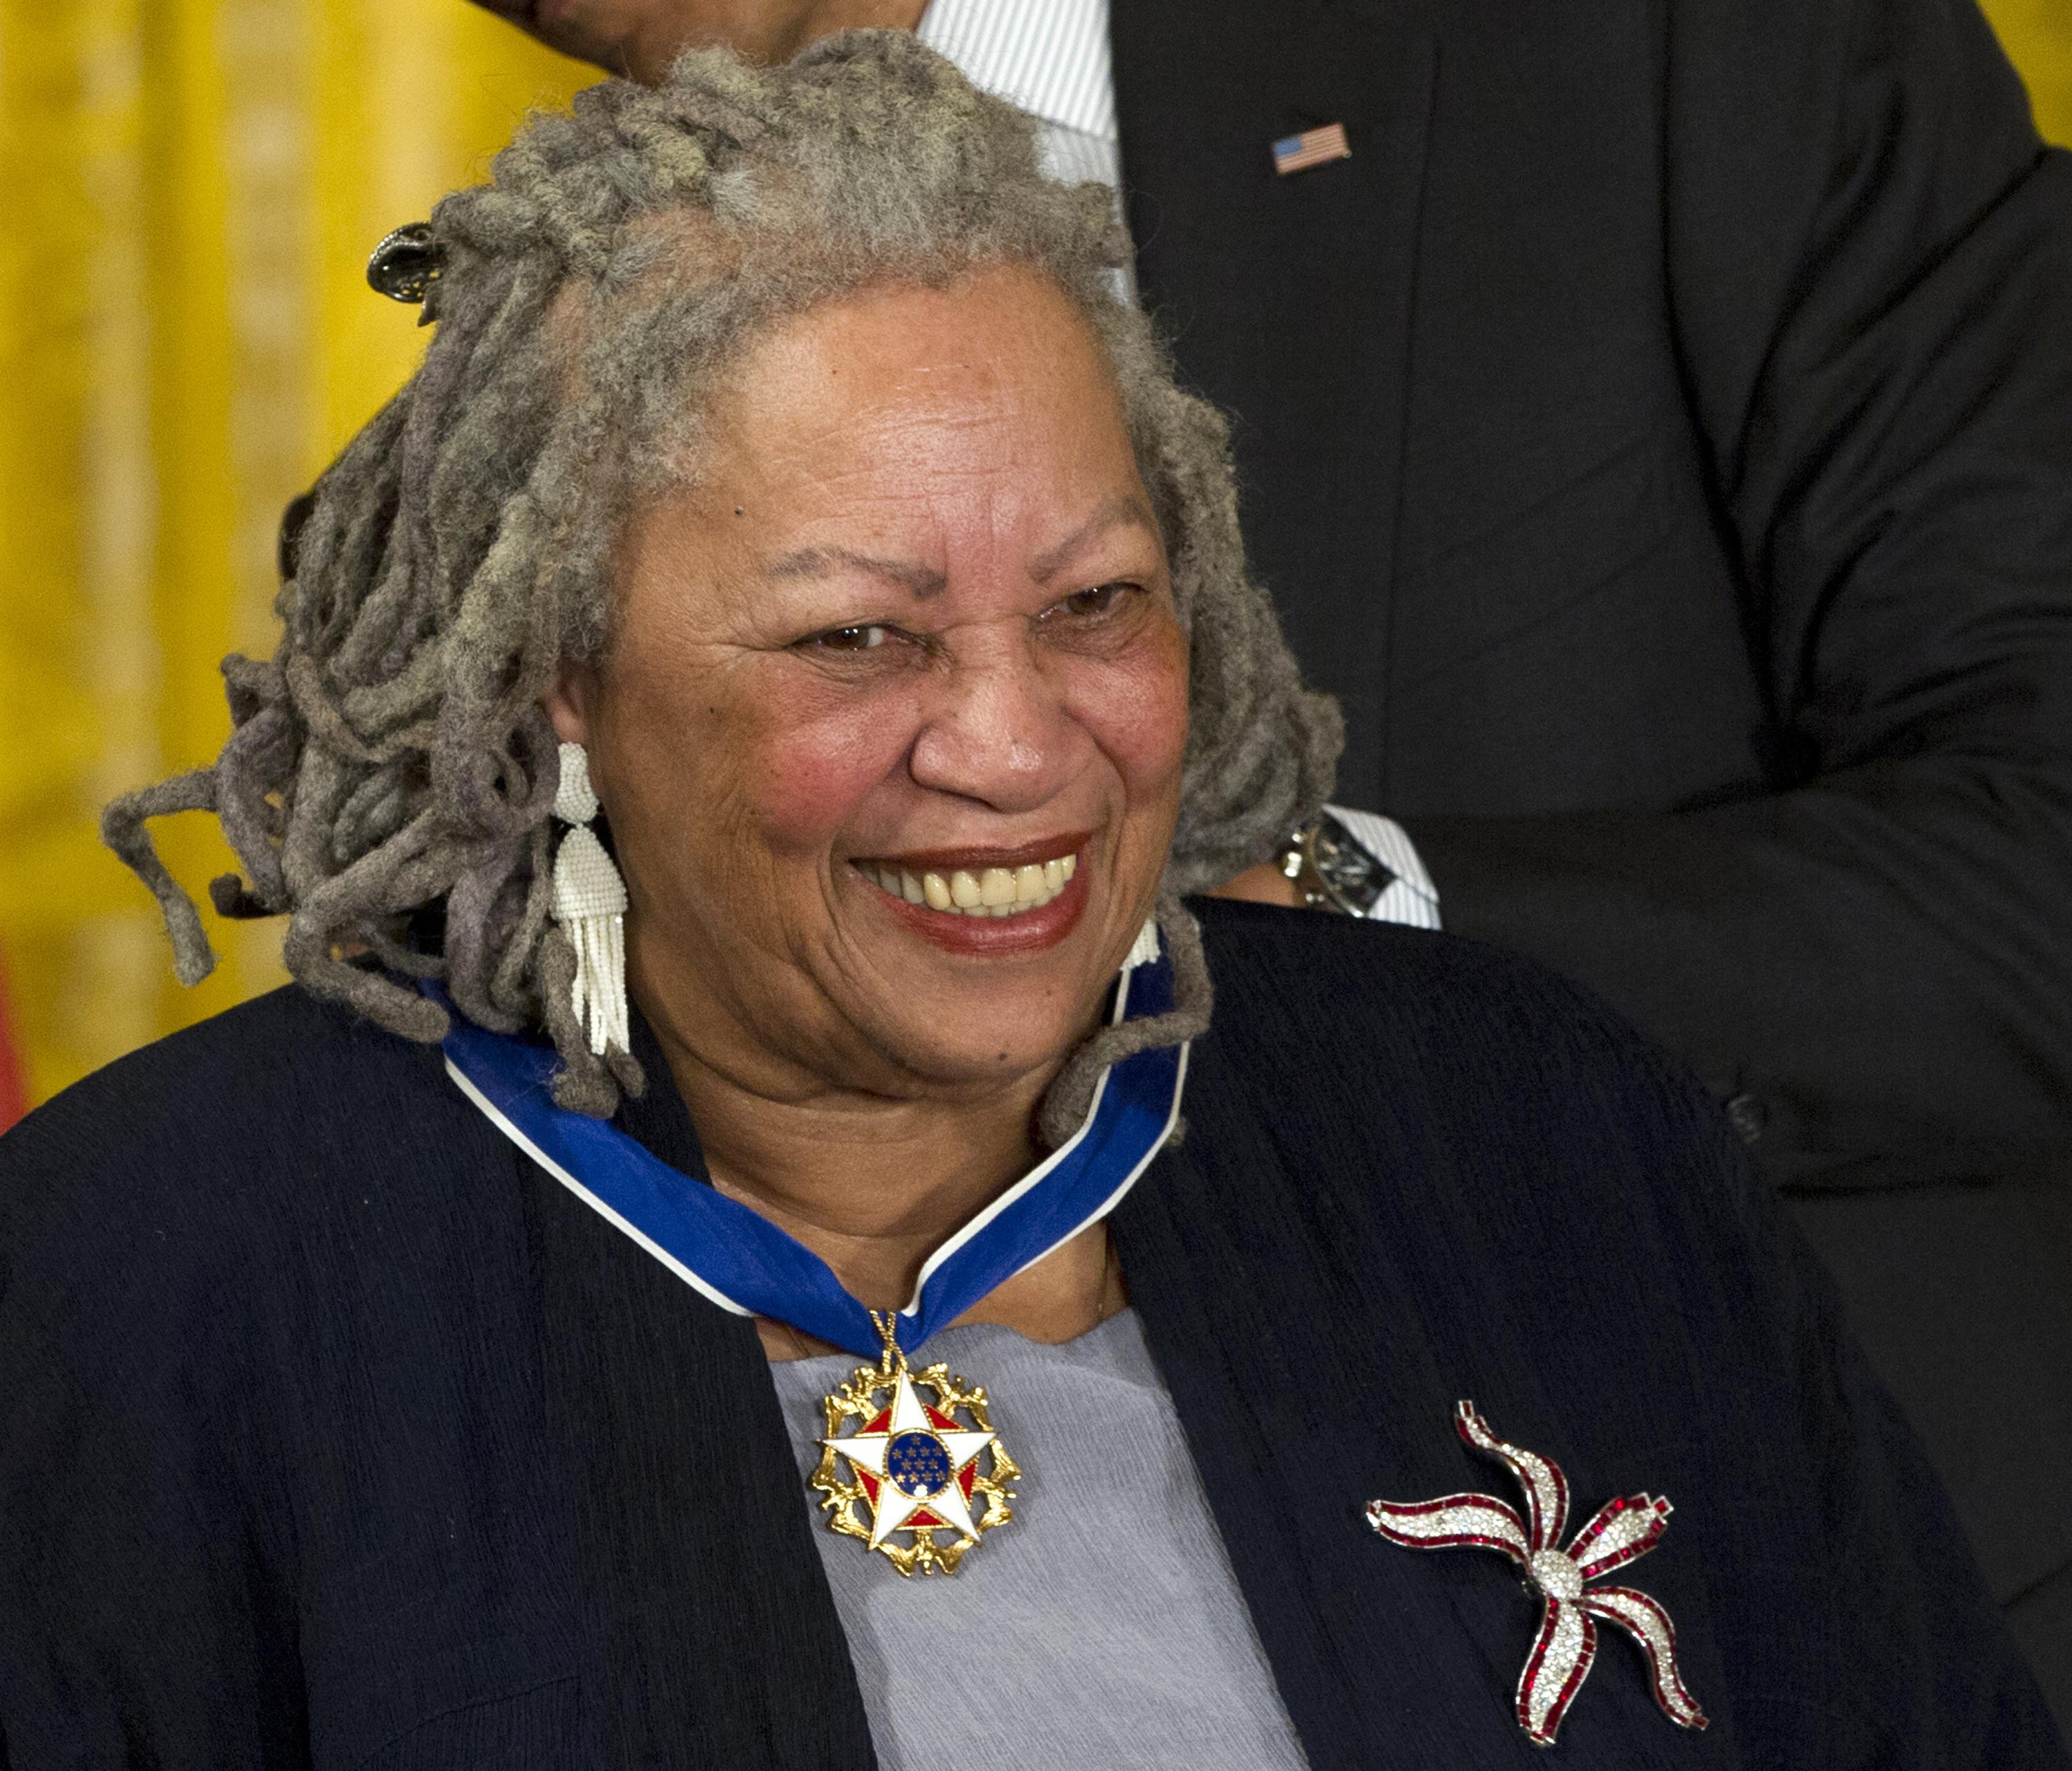 Author Toni Morrison receives her Medal of Freedom award during a ceremony in the East Room of the White House in Washington, on May 29, 2012. Photo: AP/File